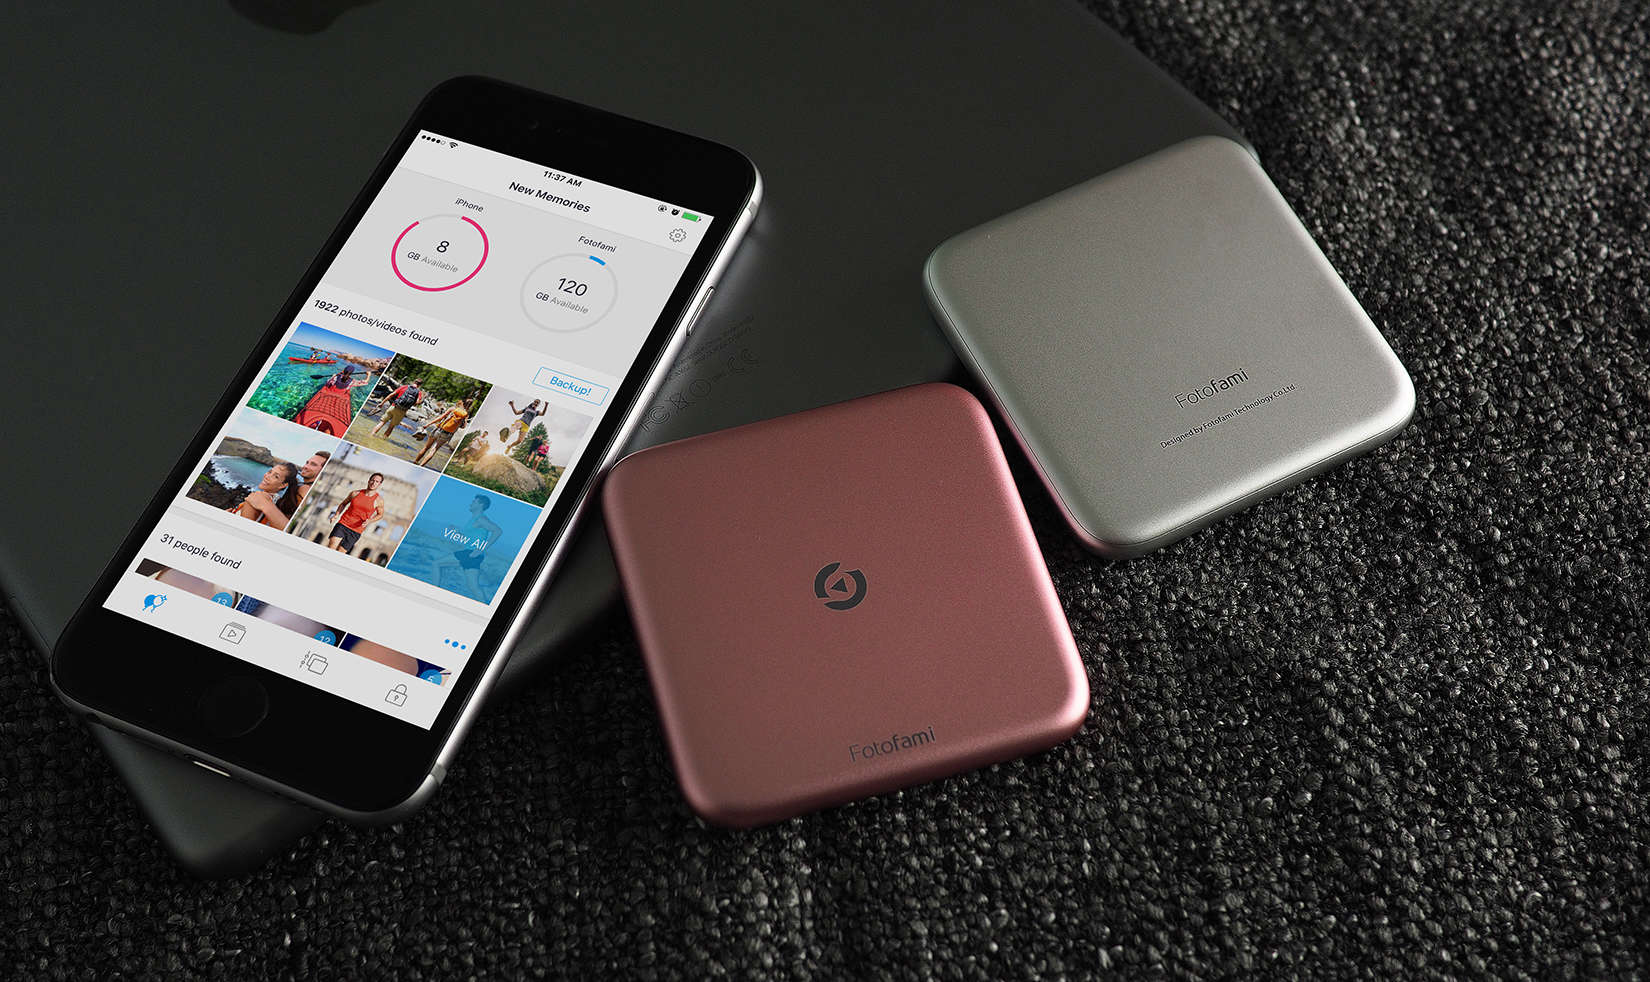 No Wi-Fi, no cloud with this iPhone photo and video storage solution.